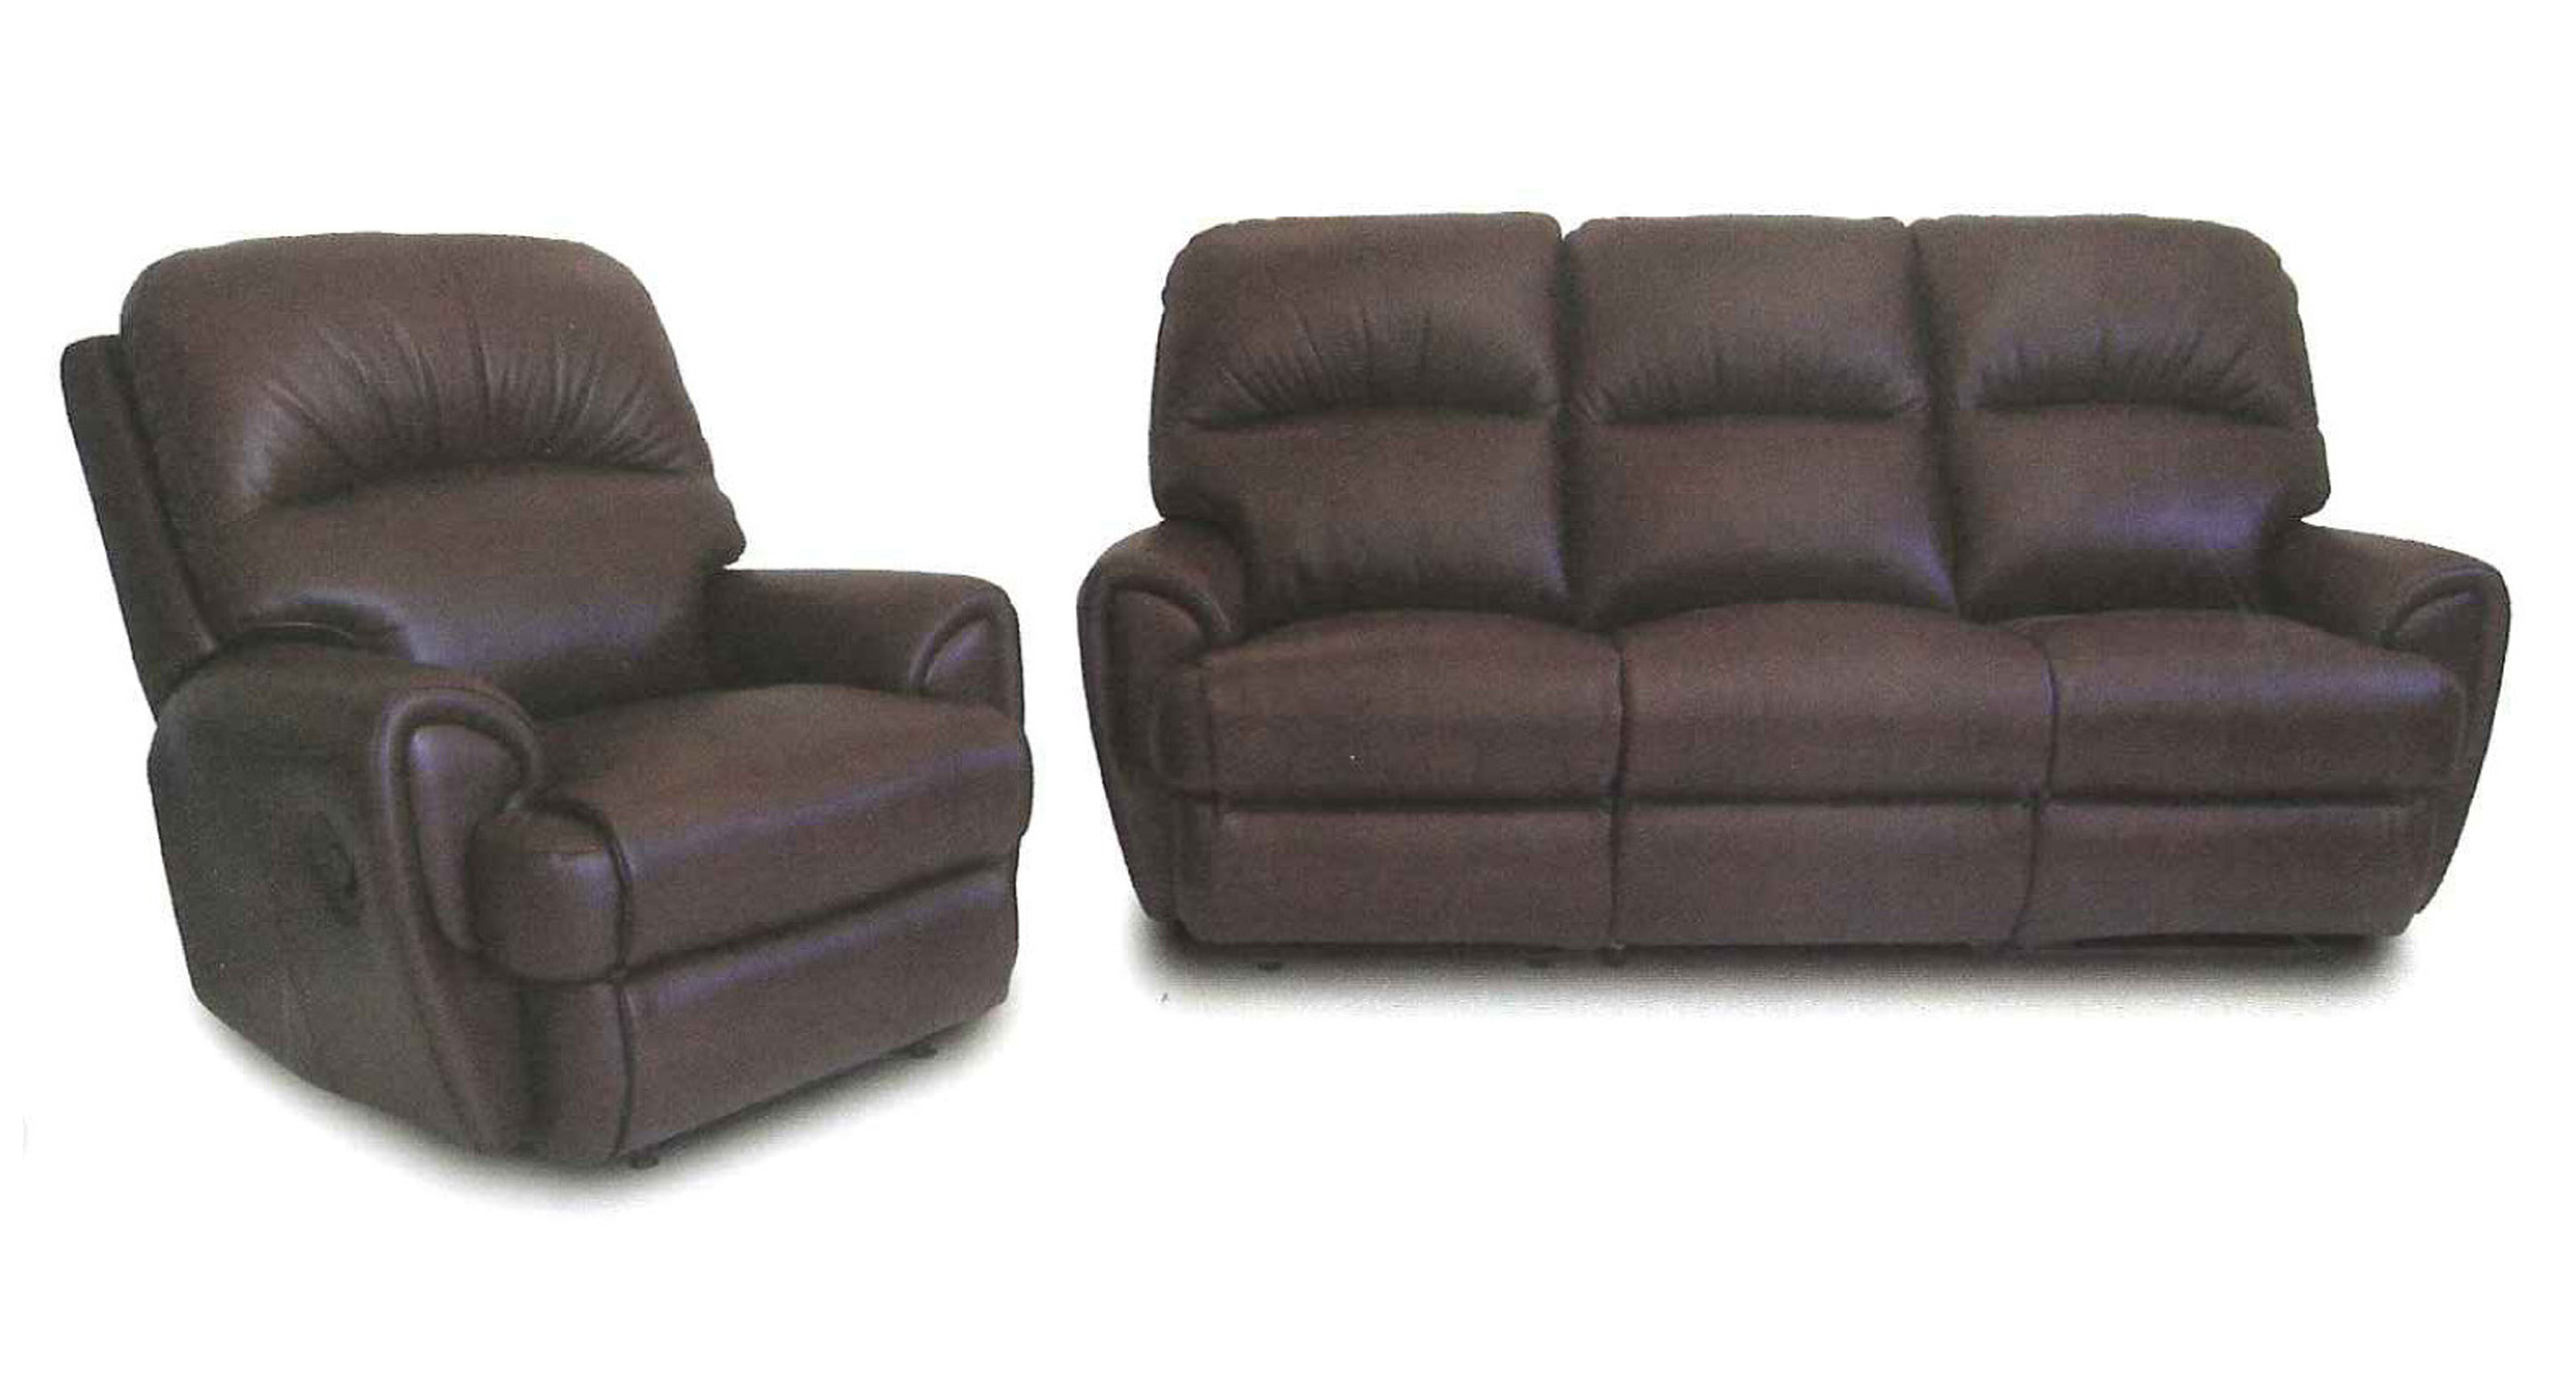 Glen Reclining Sofa and Chairs